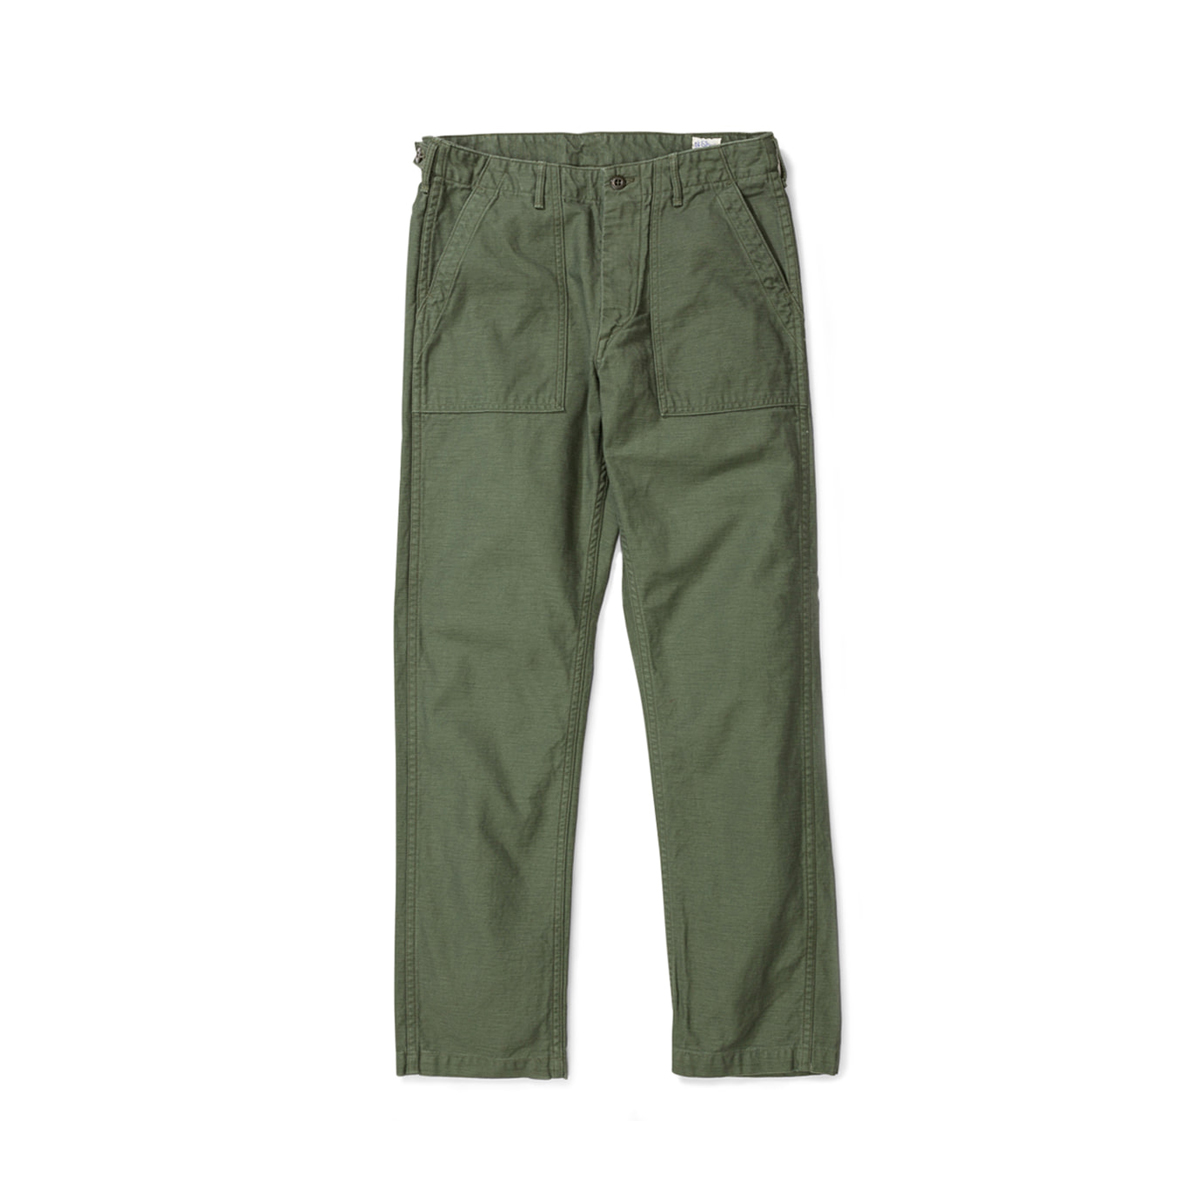 [ORSLOW] US ARMY FATIGUE PANTS 'OLIVE'